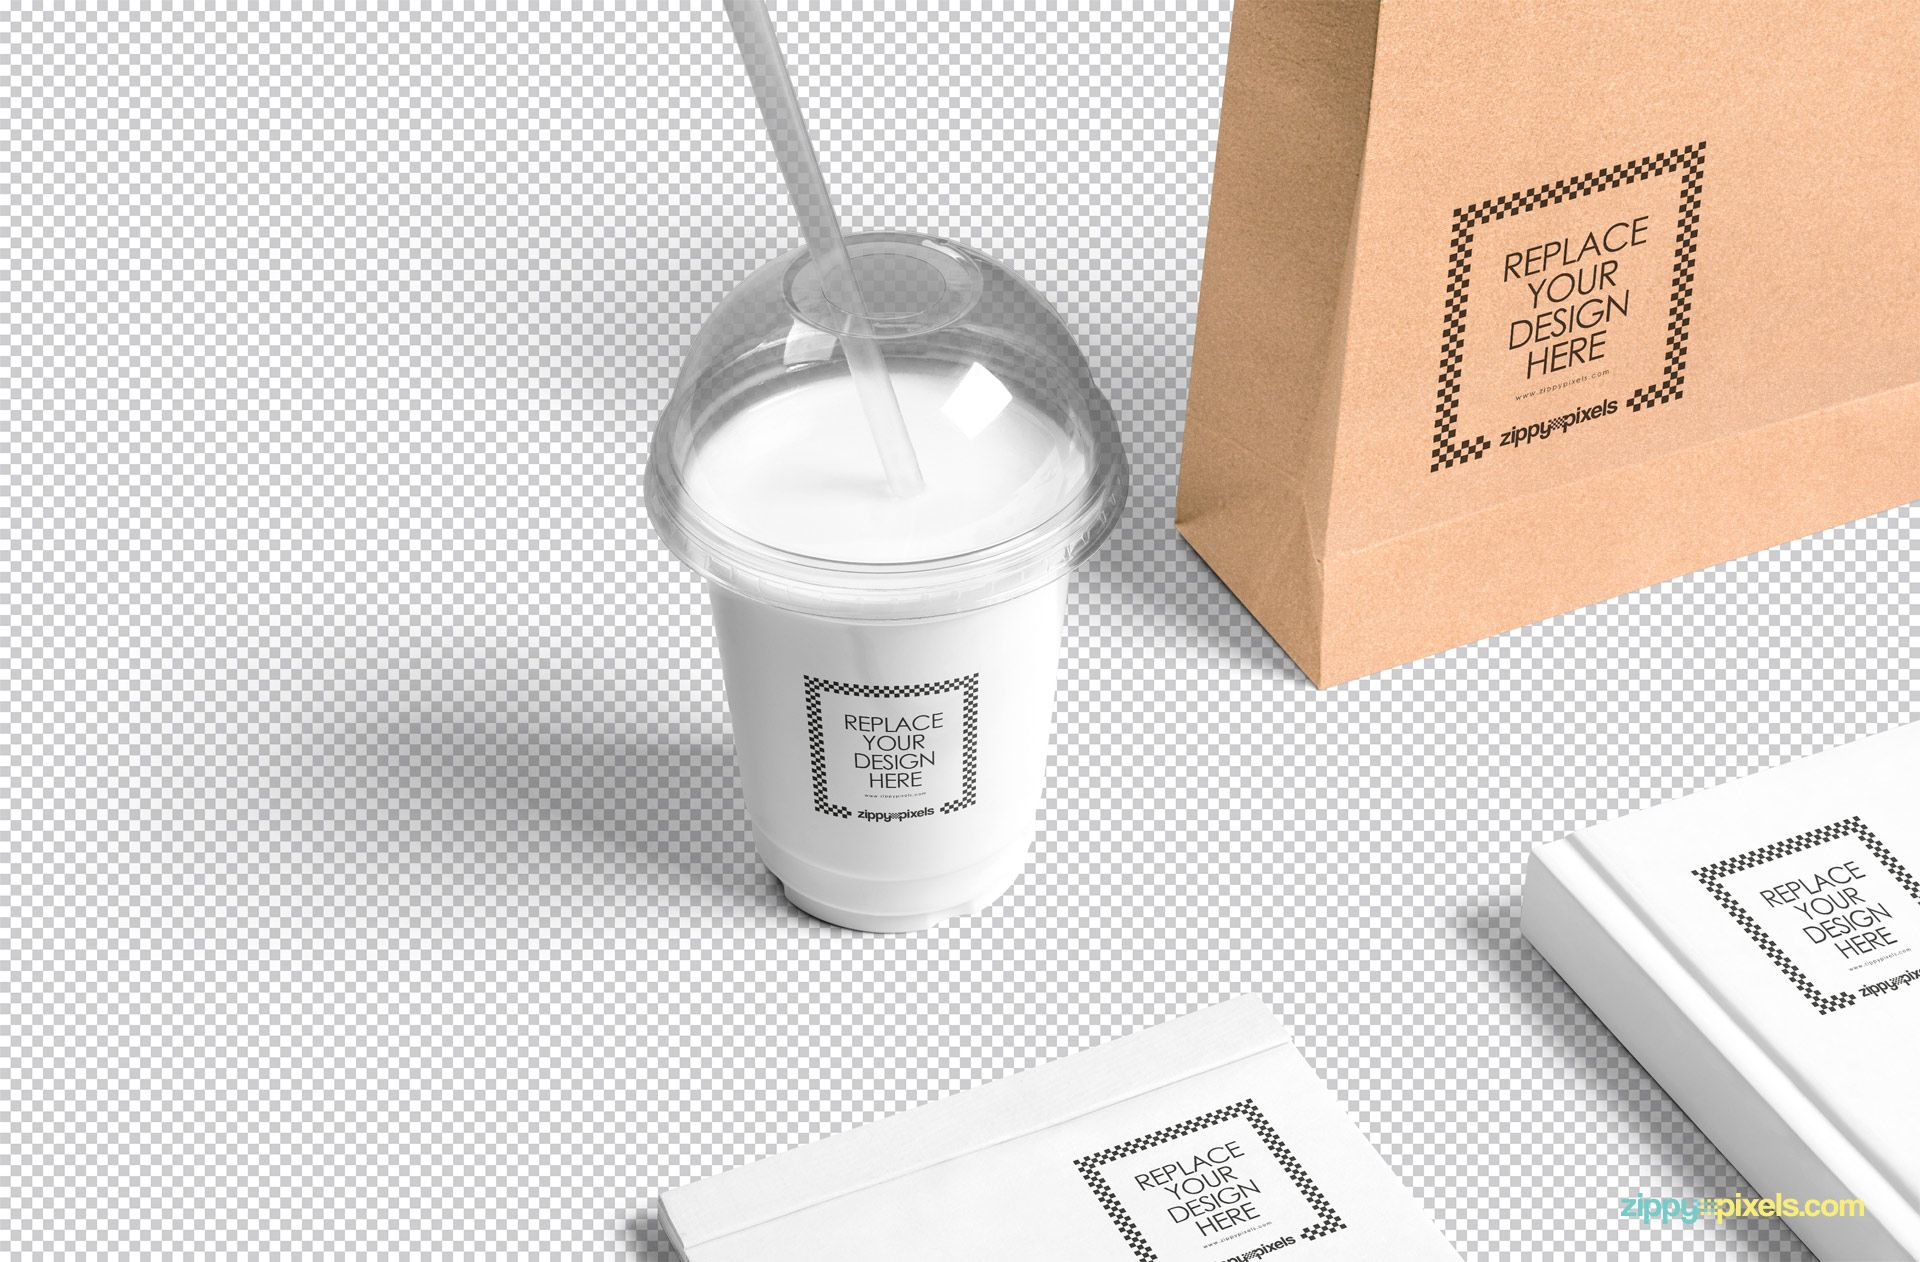 Free Transparent Plastic Cup Mockup Milk packaging, Cup